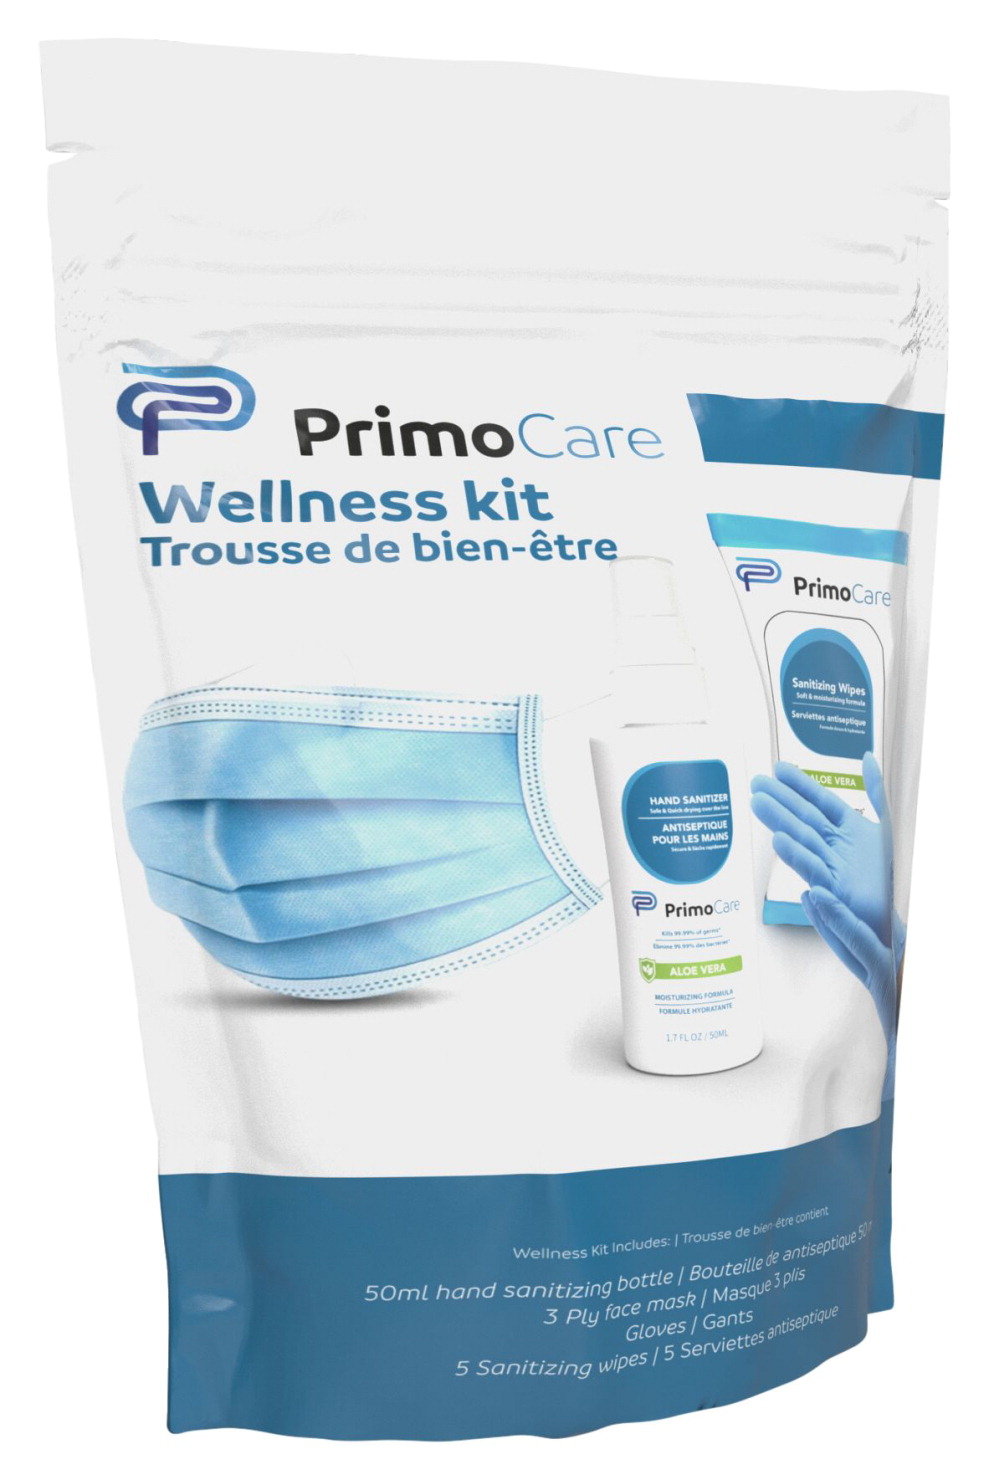 Primo Wellness Kit, Mask, Sanitizer, Wipes, Each